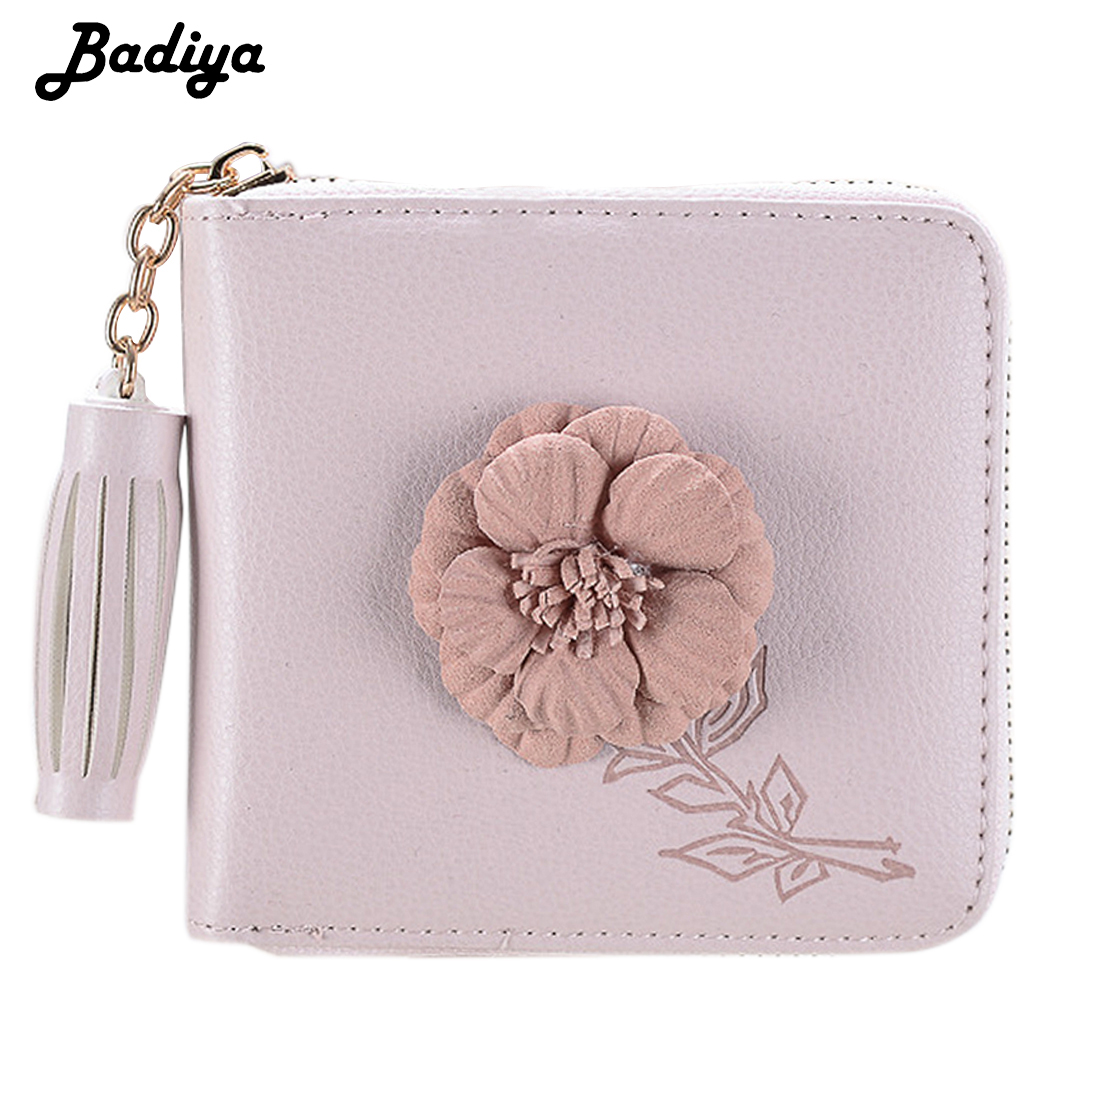 Women Small Flower Wallet Tassel Short Money Bag PU Leather Lady Zipper Coin Pocket Purse Female ID Credit Card Holder Clutch fashion small wallet women short luxury brand cute female purse pu leather cat design girls lady zipper wallets card holder bags